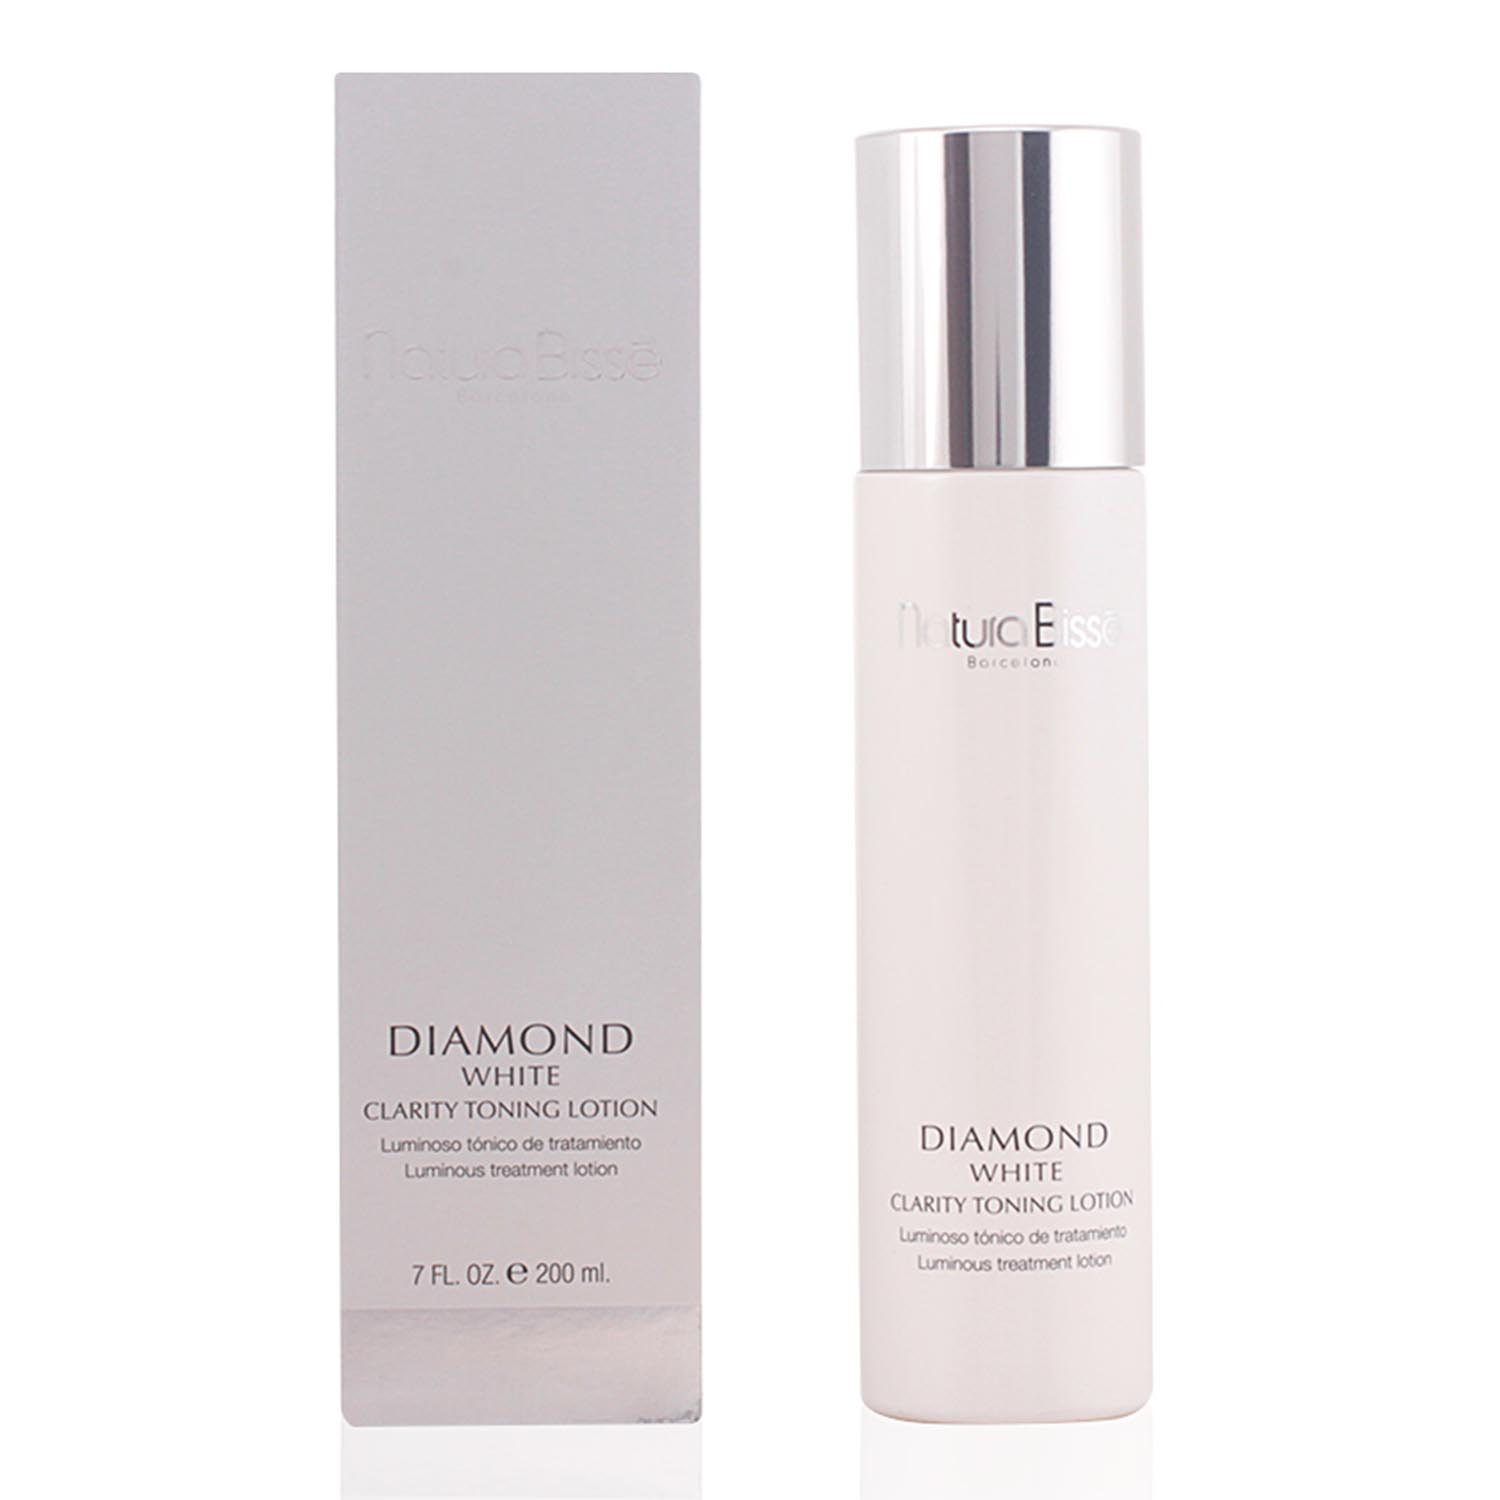 Natura bisse diamond white clarity toning lotion 200ml